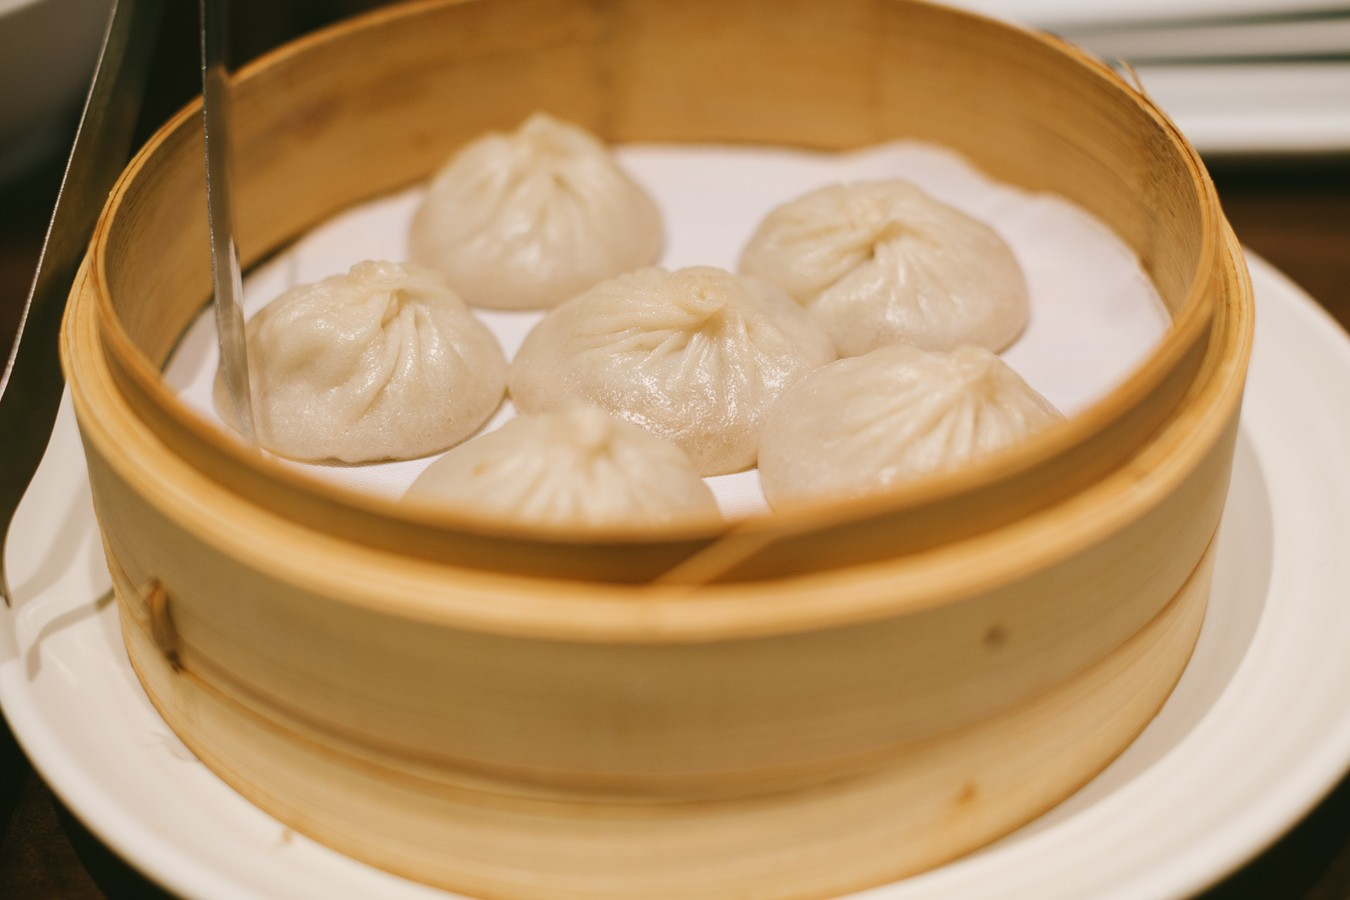 This is one of the best and authentic Chinese foods to try!